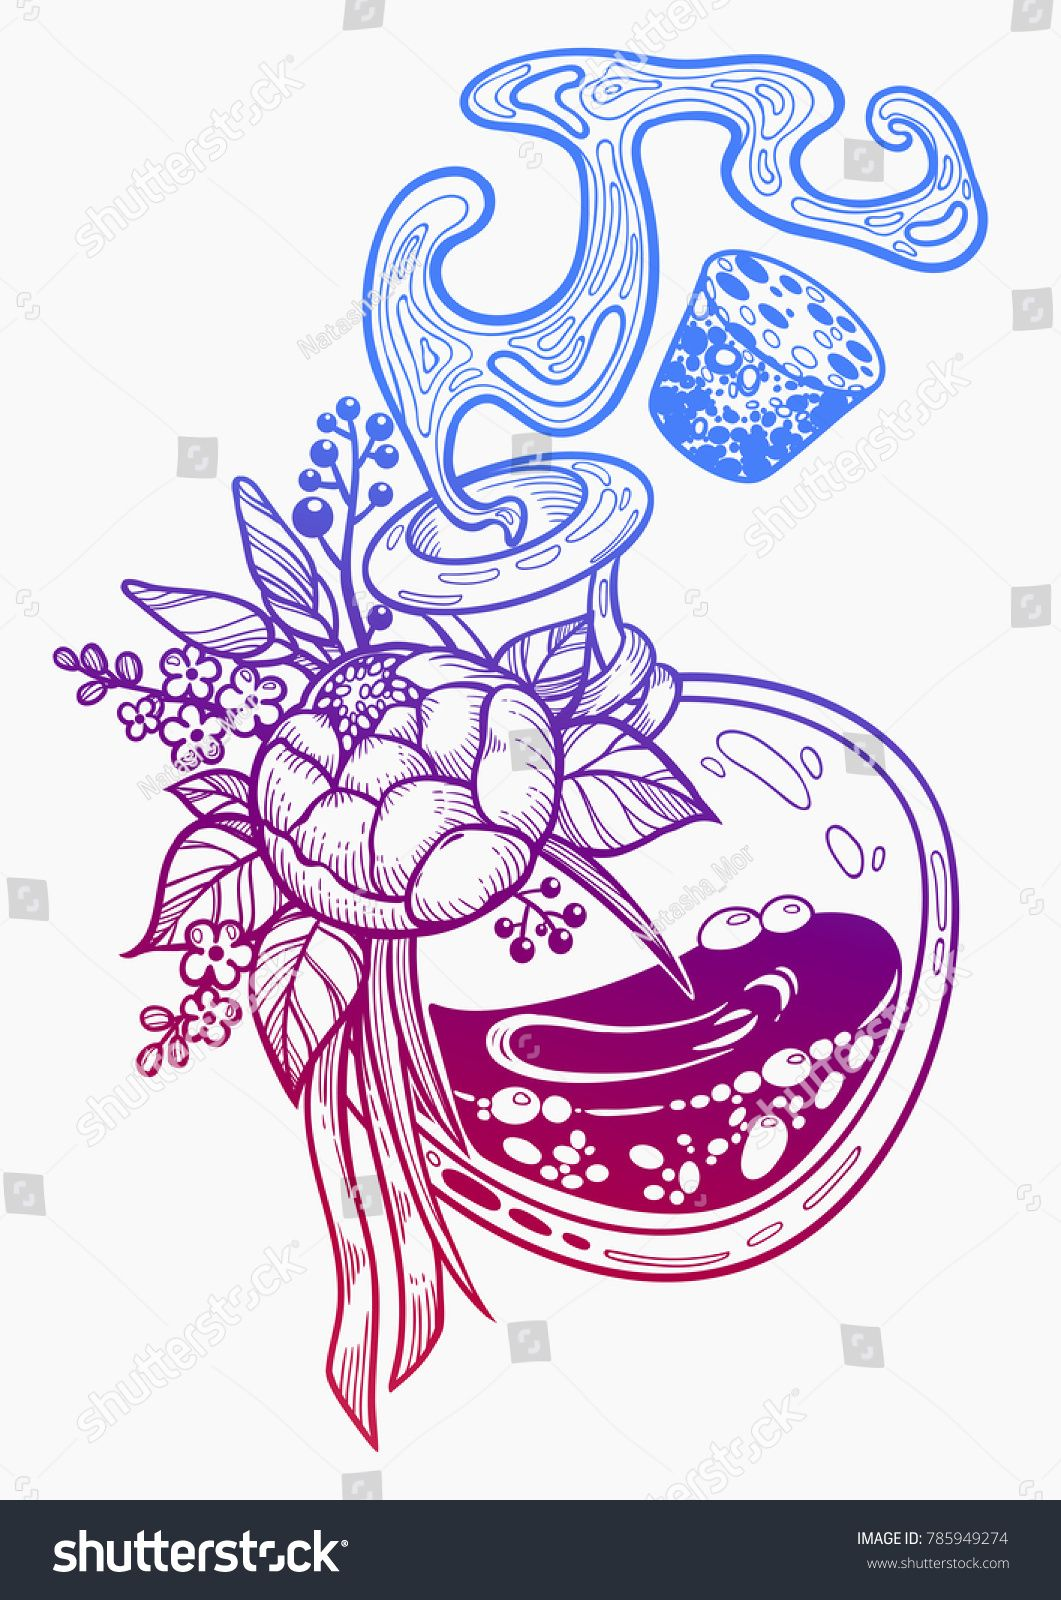 Hand Drawn Magic Bottle Vial With Flower Gothic Style Vector